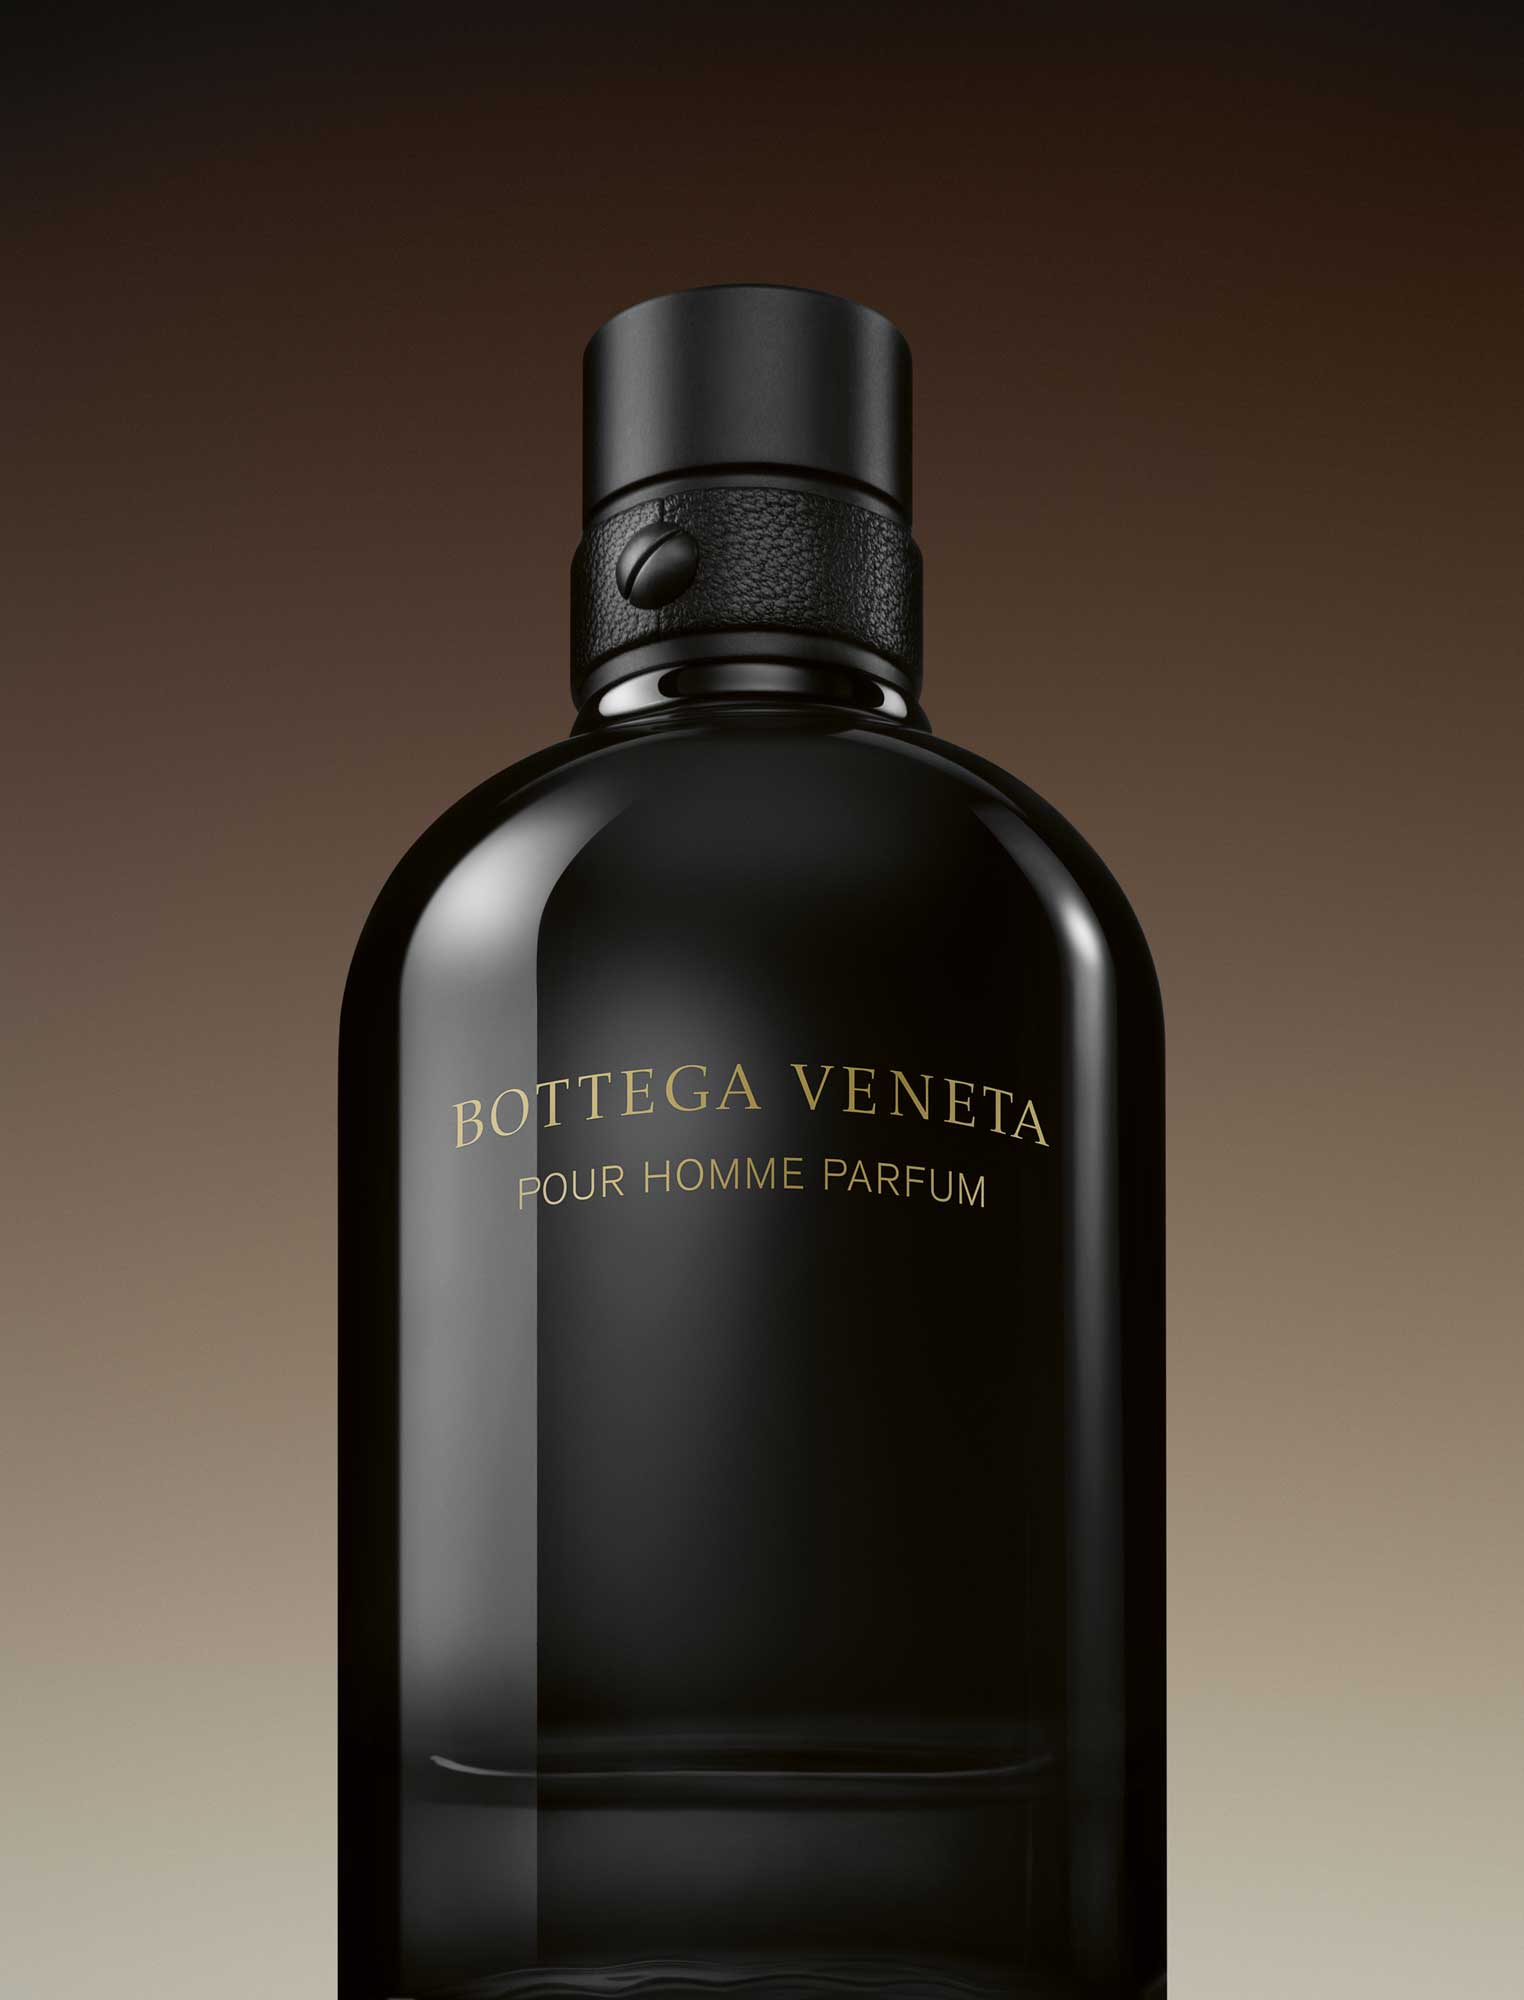 bottega veneta pour homme parfum bottega veneta cologne a new fragrance for men 2017. Black Bedroom Furniture Sets. Home Design Ideas